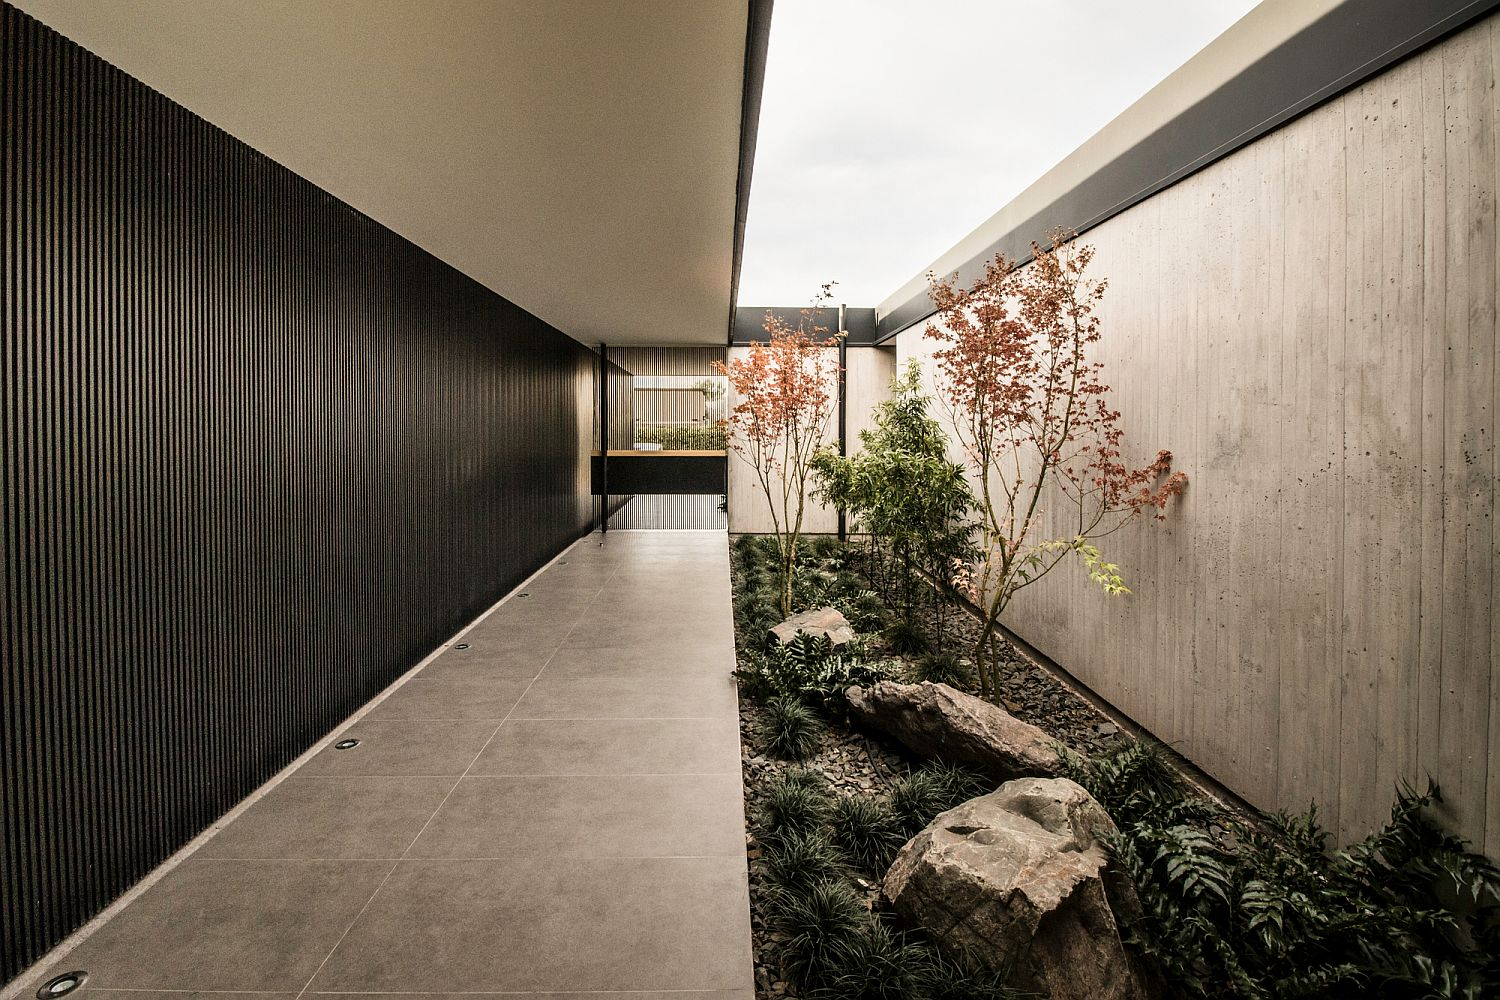 Combining the interior and the exterior of the house using green elements